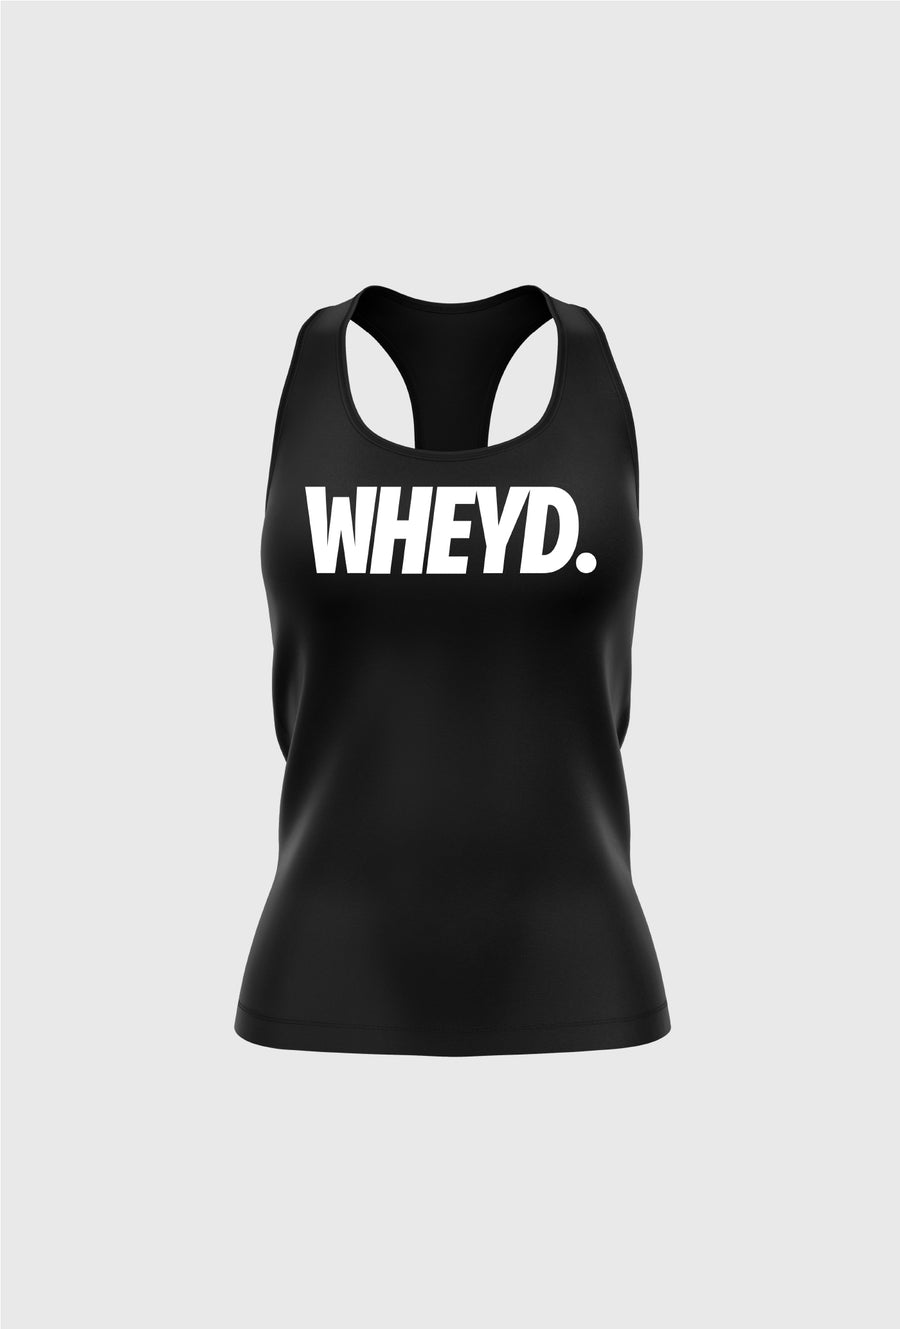 WHEYD Female Muscle Tank